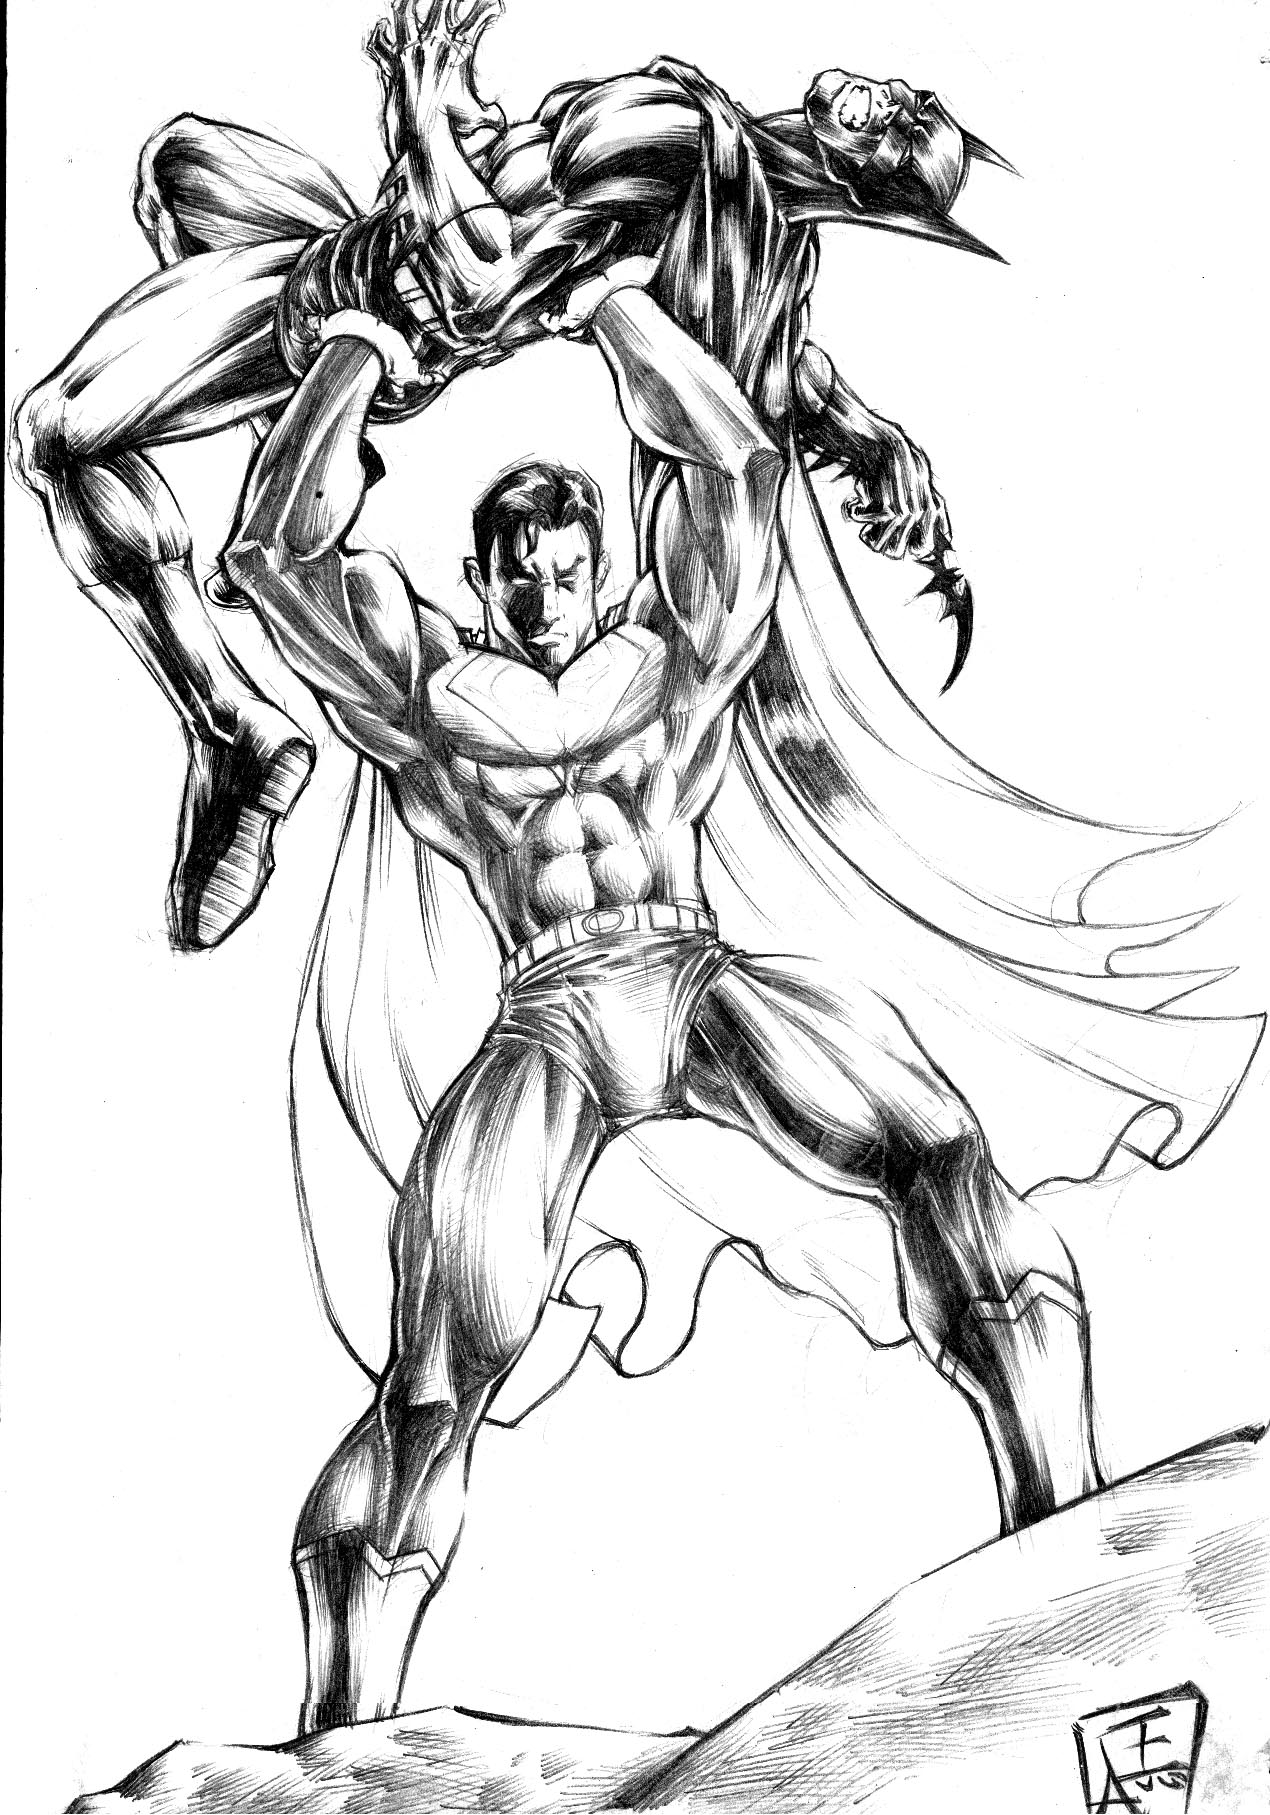 Coloriage superman les beaux dessins de super h ros imprimer et colorier page 11 - Superman et batman dessin anime ...